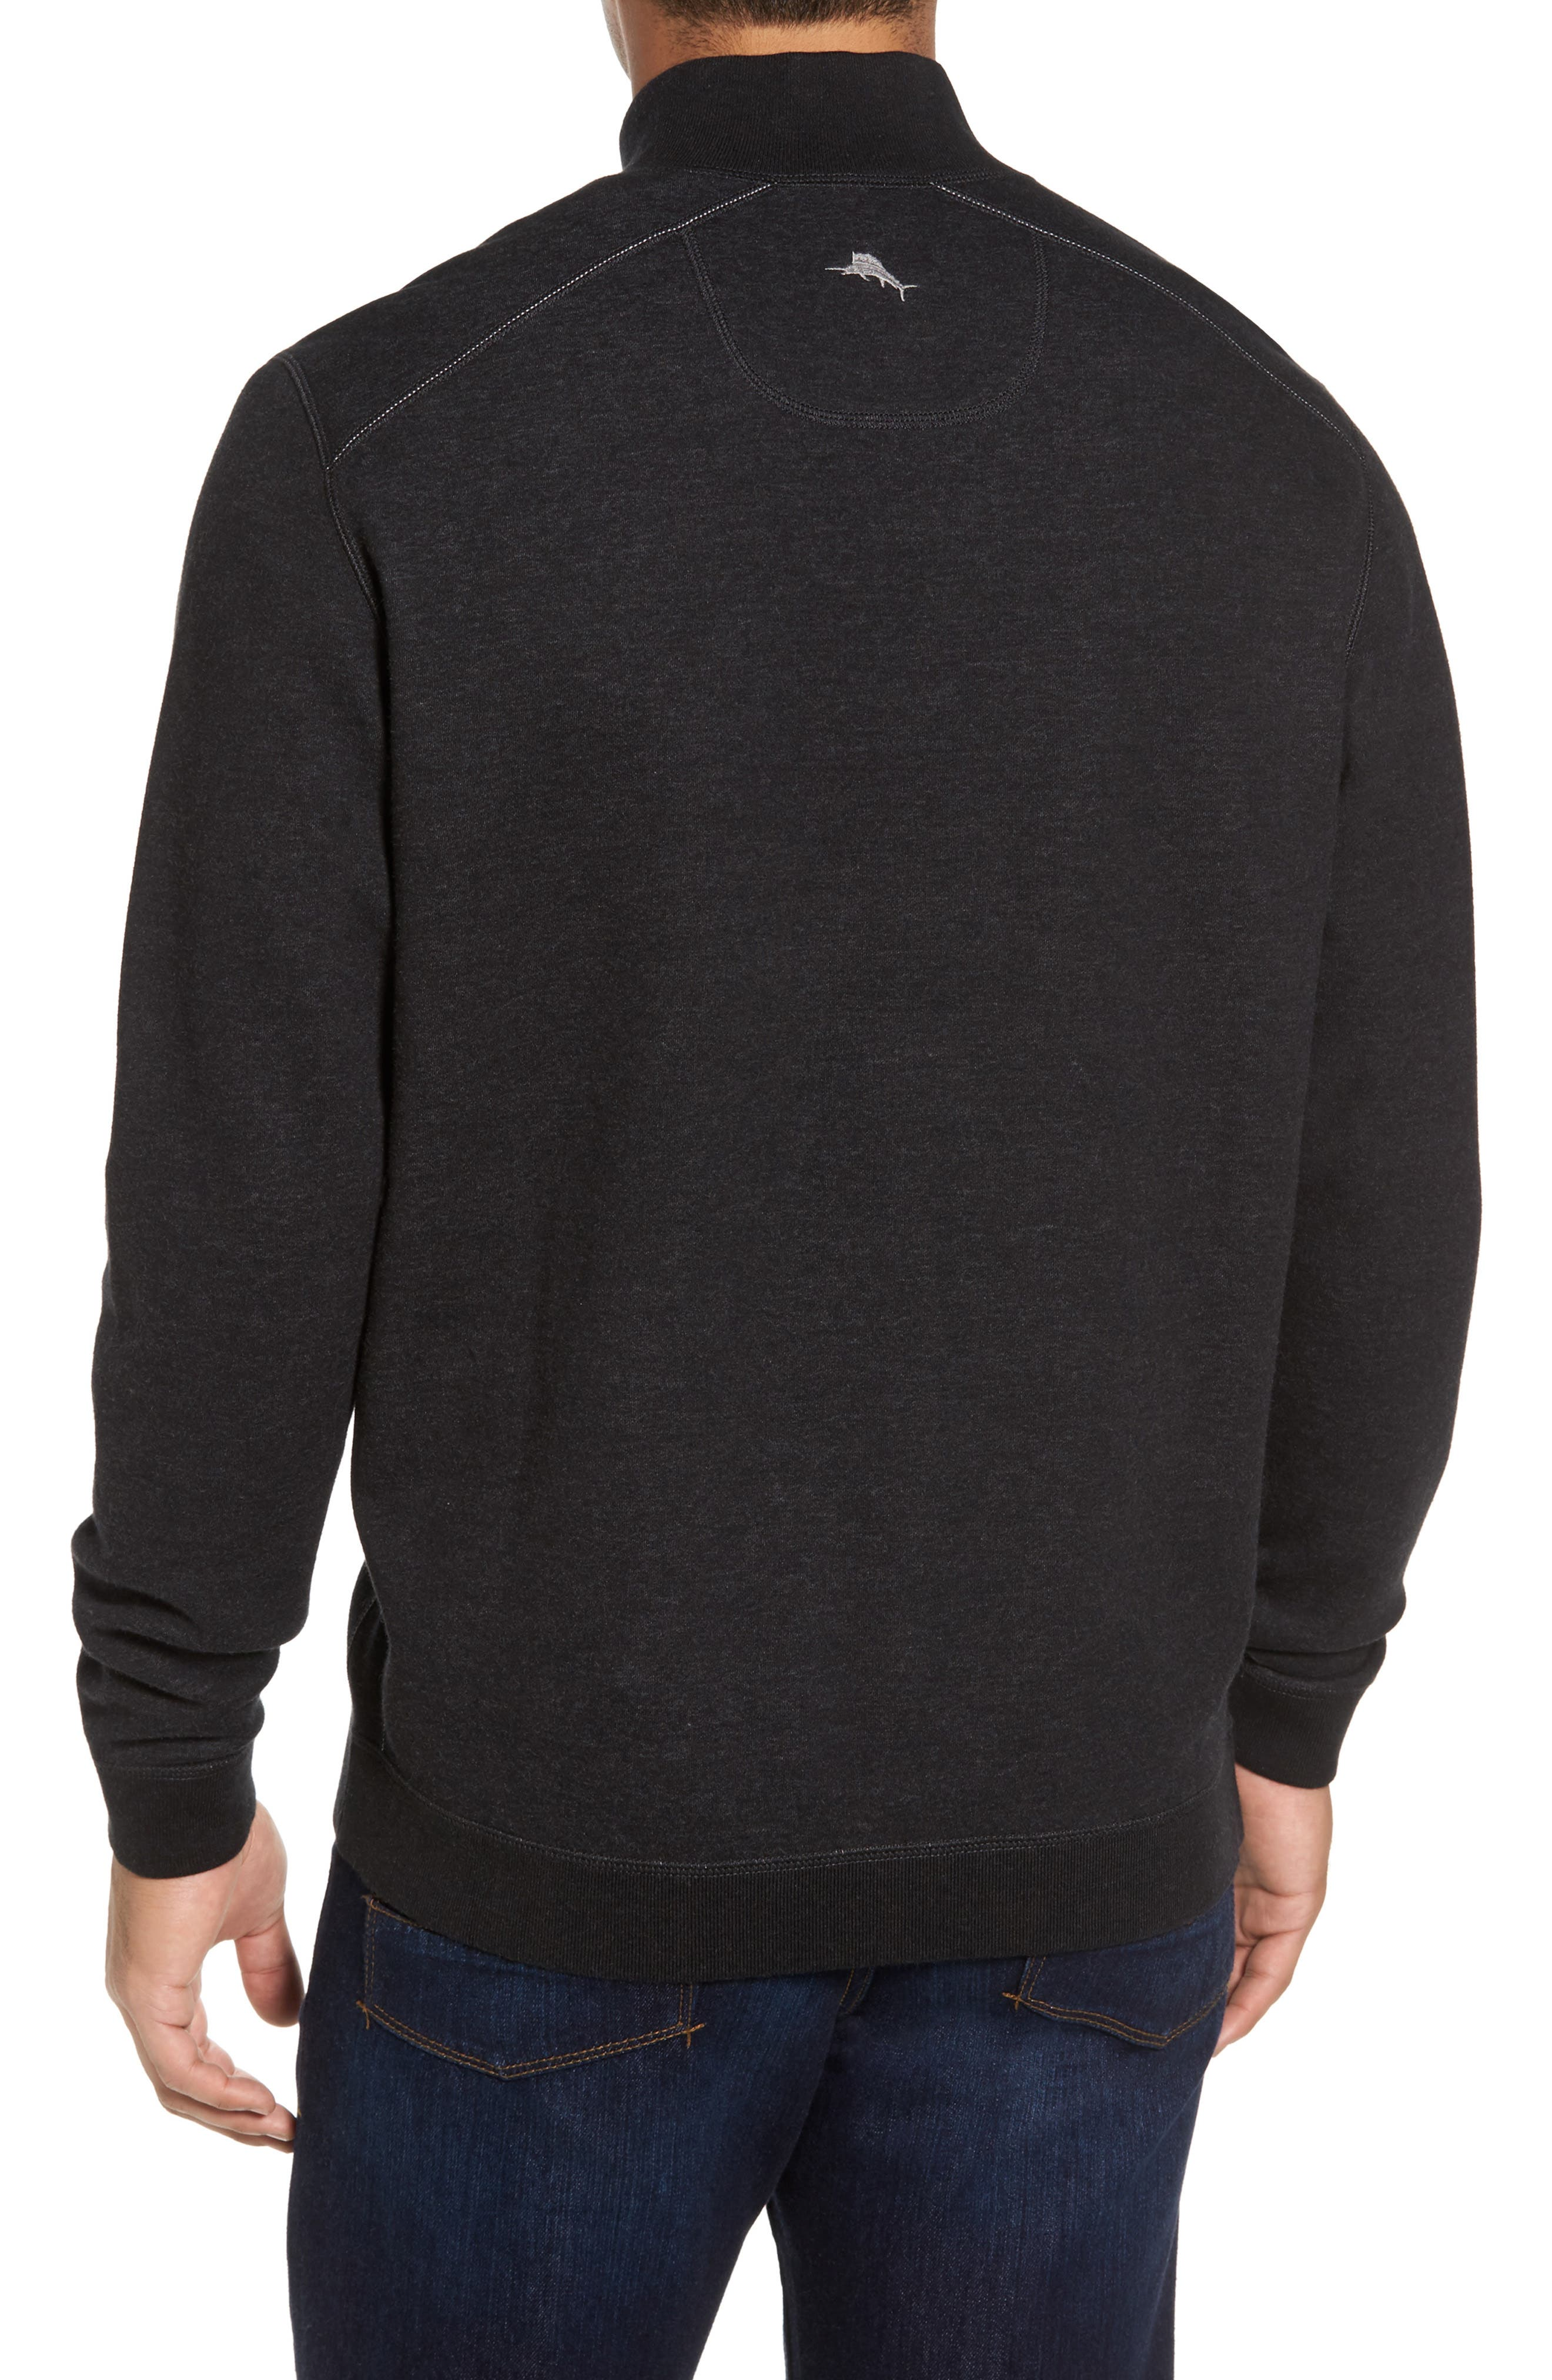 Flip Drive Quarter Zip Pullover,                             Alternate thumbnail 2, color,                             Black